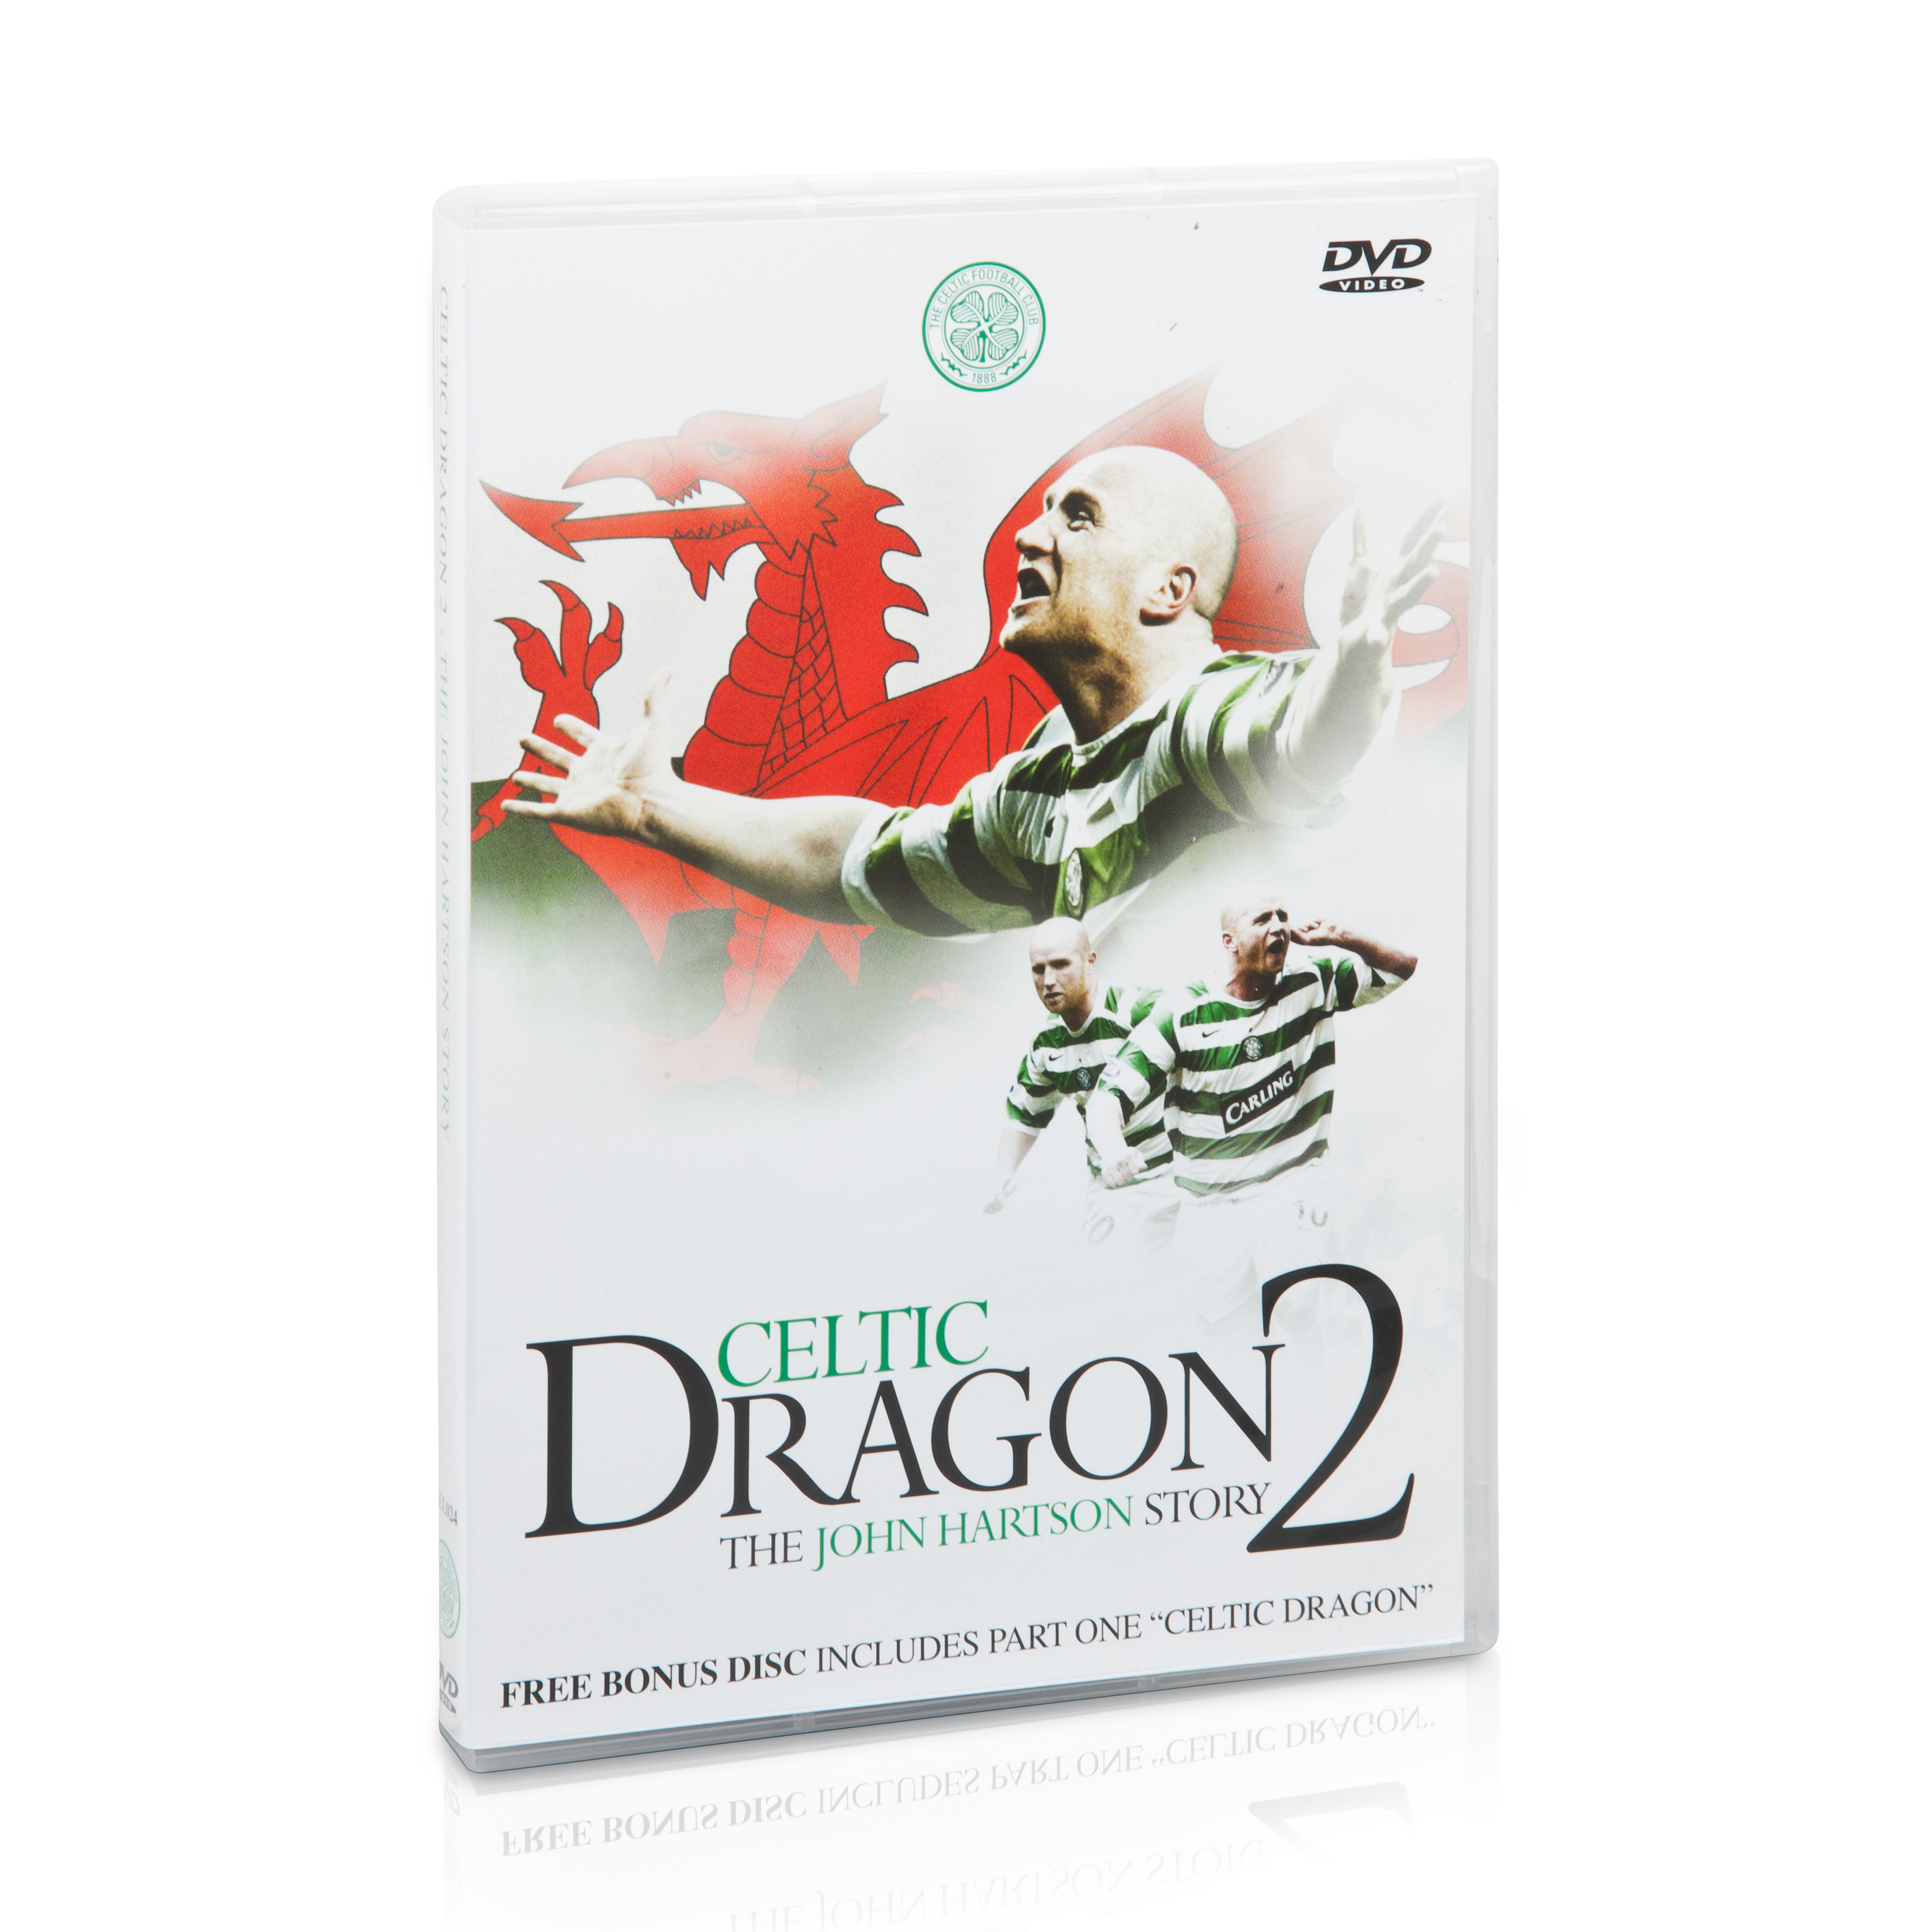 Celtic Dragon 2 - The John Hartson Story DVD